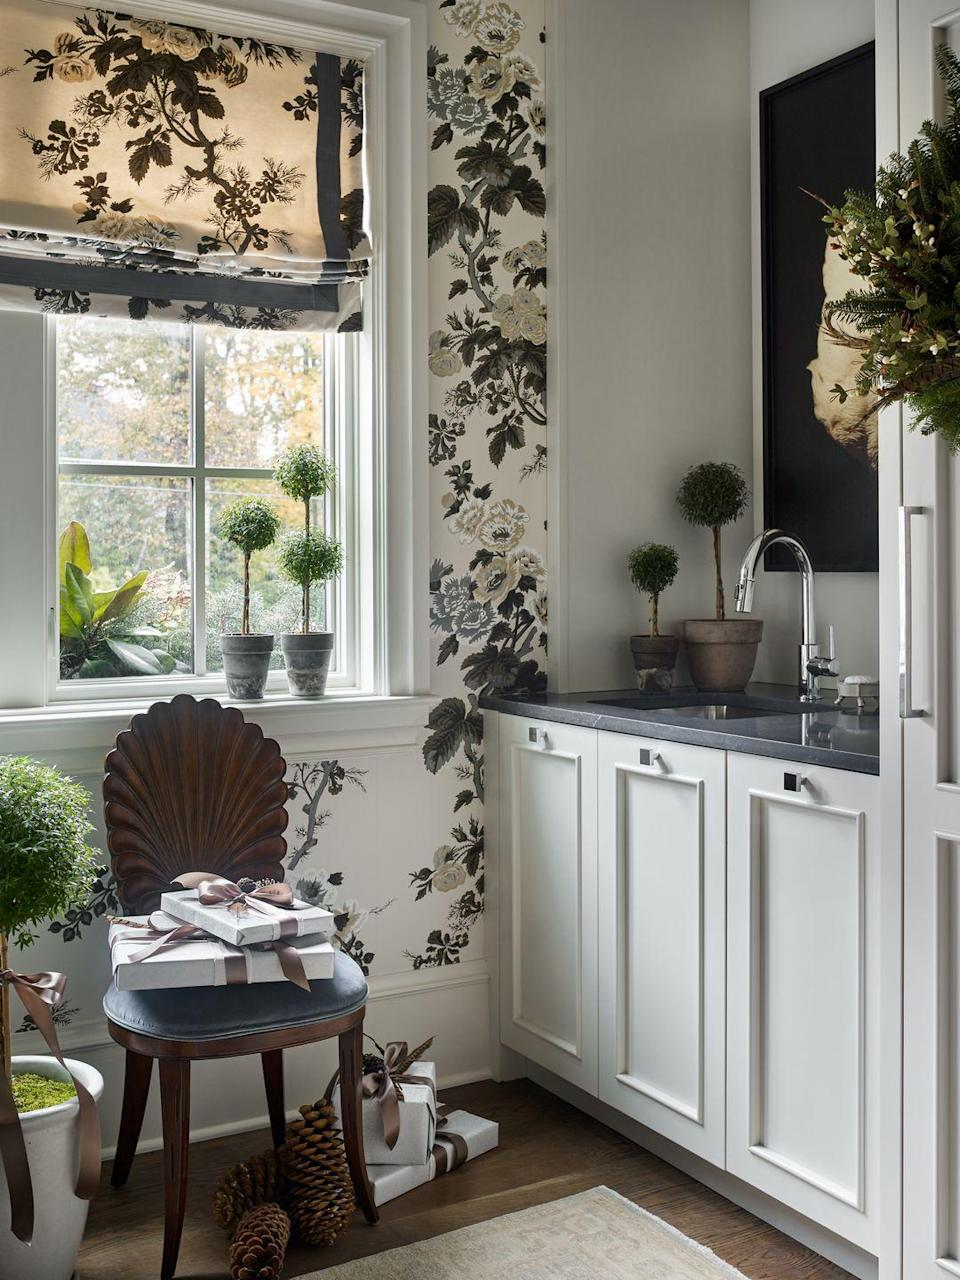 """<p>Nowadays, florals may not be particularly groundbreaking. Interior designer <a href=""""https://www.instagram.com/laurenelaineinteriors/?hl=en"""" rel=""""nofollow noopener"""" target=""""_blank"""" data-ylk=""""slk:Lauren Lowe"""" class=""""link rapid-noclick-resp"""">Lauren Lowe</a> gave this go-to pattern an edgy twist, however, by deploying it in a high-contrast color palette.</p><p><em>Black & White Peonies Wallpaper, $93.50 <br></em><a class=""""link rapid-noclick-resp"""" href=""""https://uswalldecor.com/products/ri5150-rifle-paper-co-peonies-wallpaper-white-black"""" rel=""""nofollow noopener"""" target=""""_blank"""" data-ylk=""""slk:Shop the Look"""">Shop the Look</a></p>"""